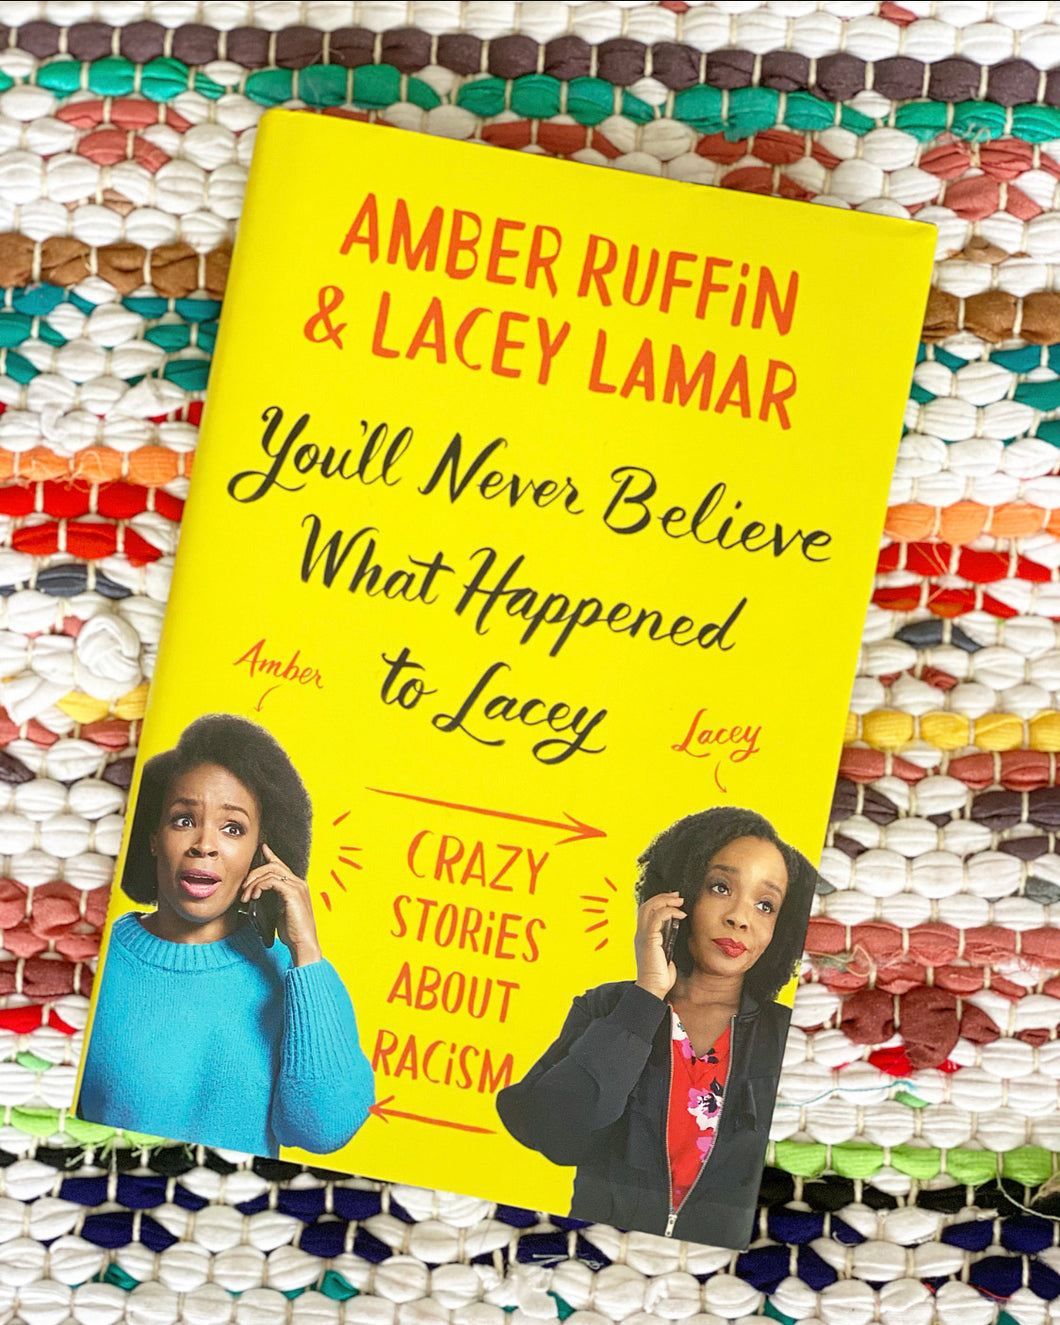 You'll Never Believe What Happened to Lacey: Crazy Stories about Racism | Amber Ruffin, Lacey Lamar